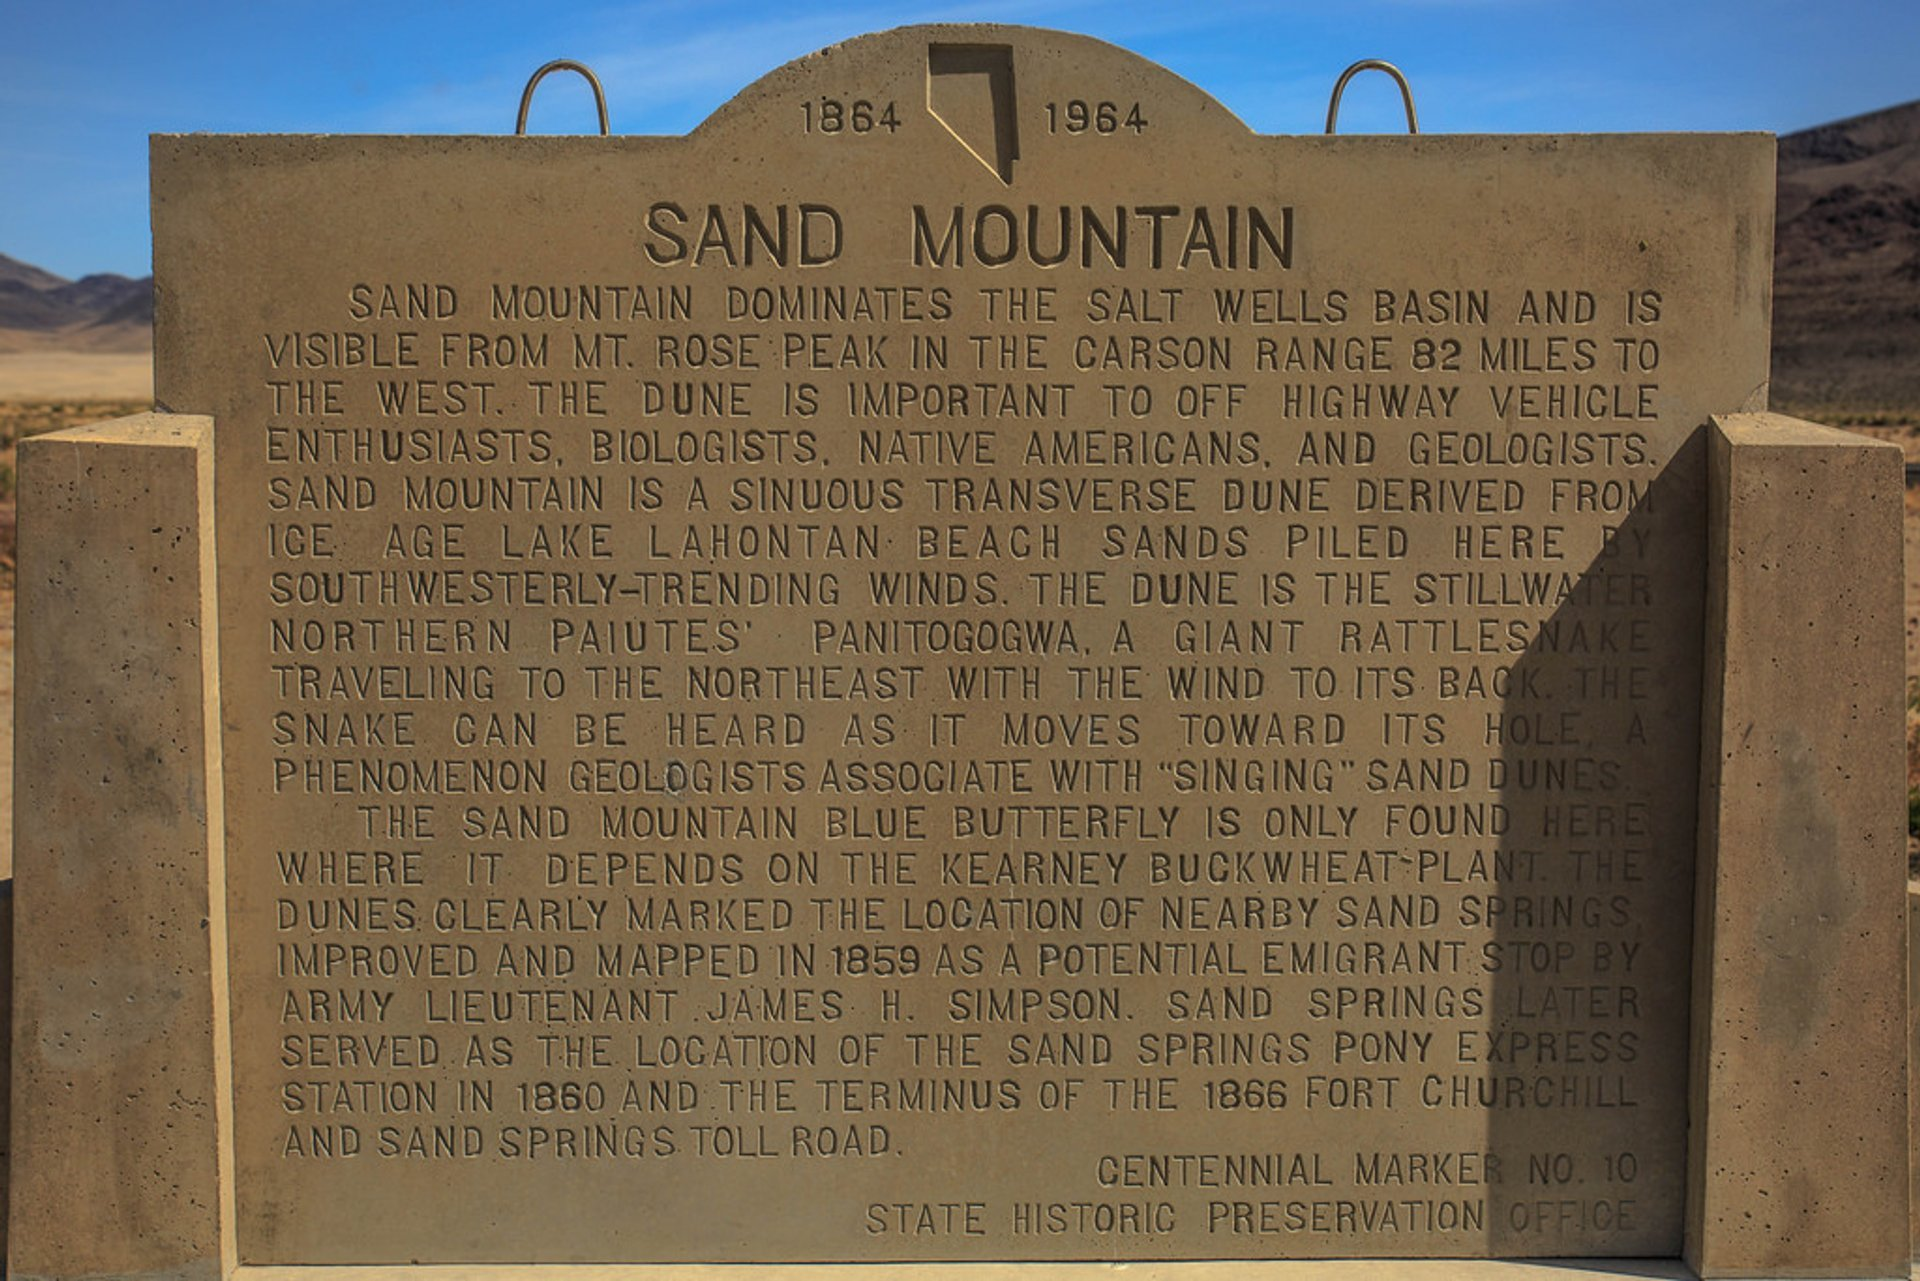 Best time to see Sand Mountain in Nevada 2020